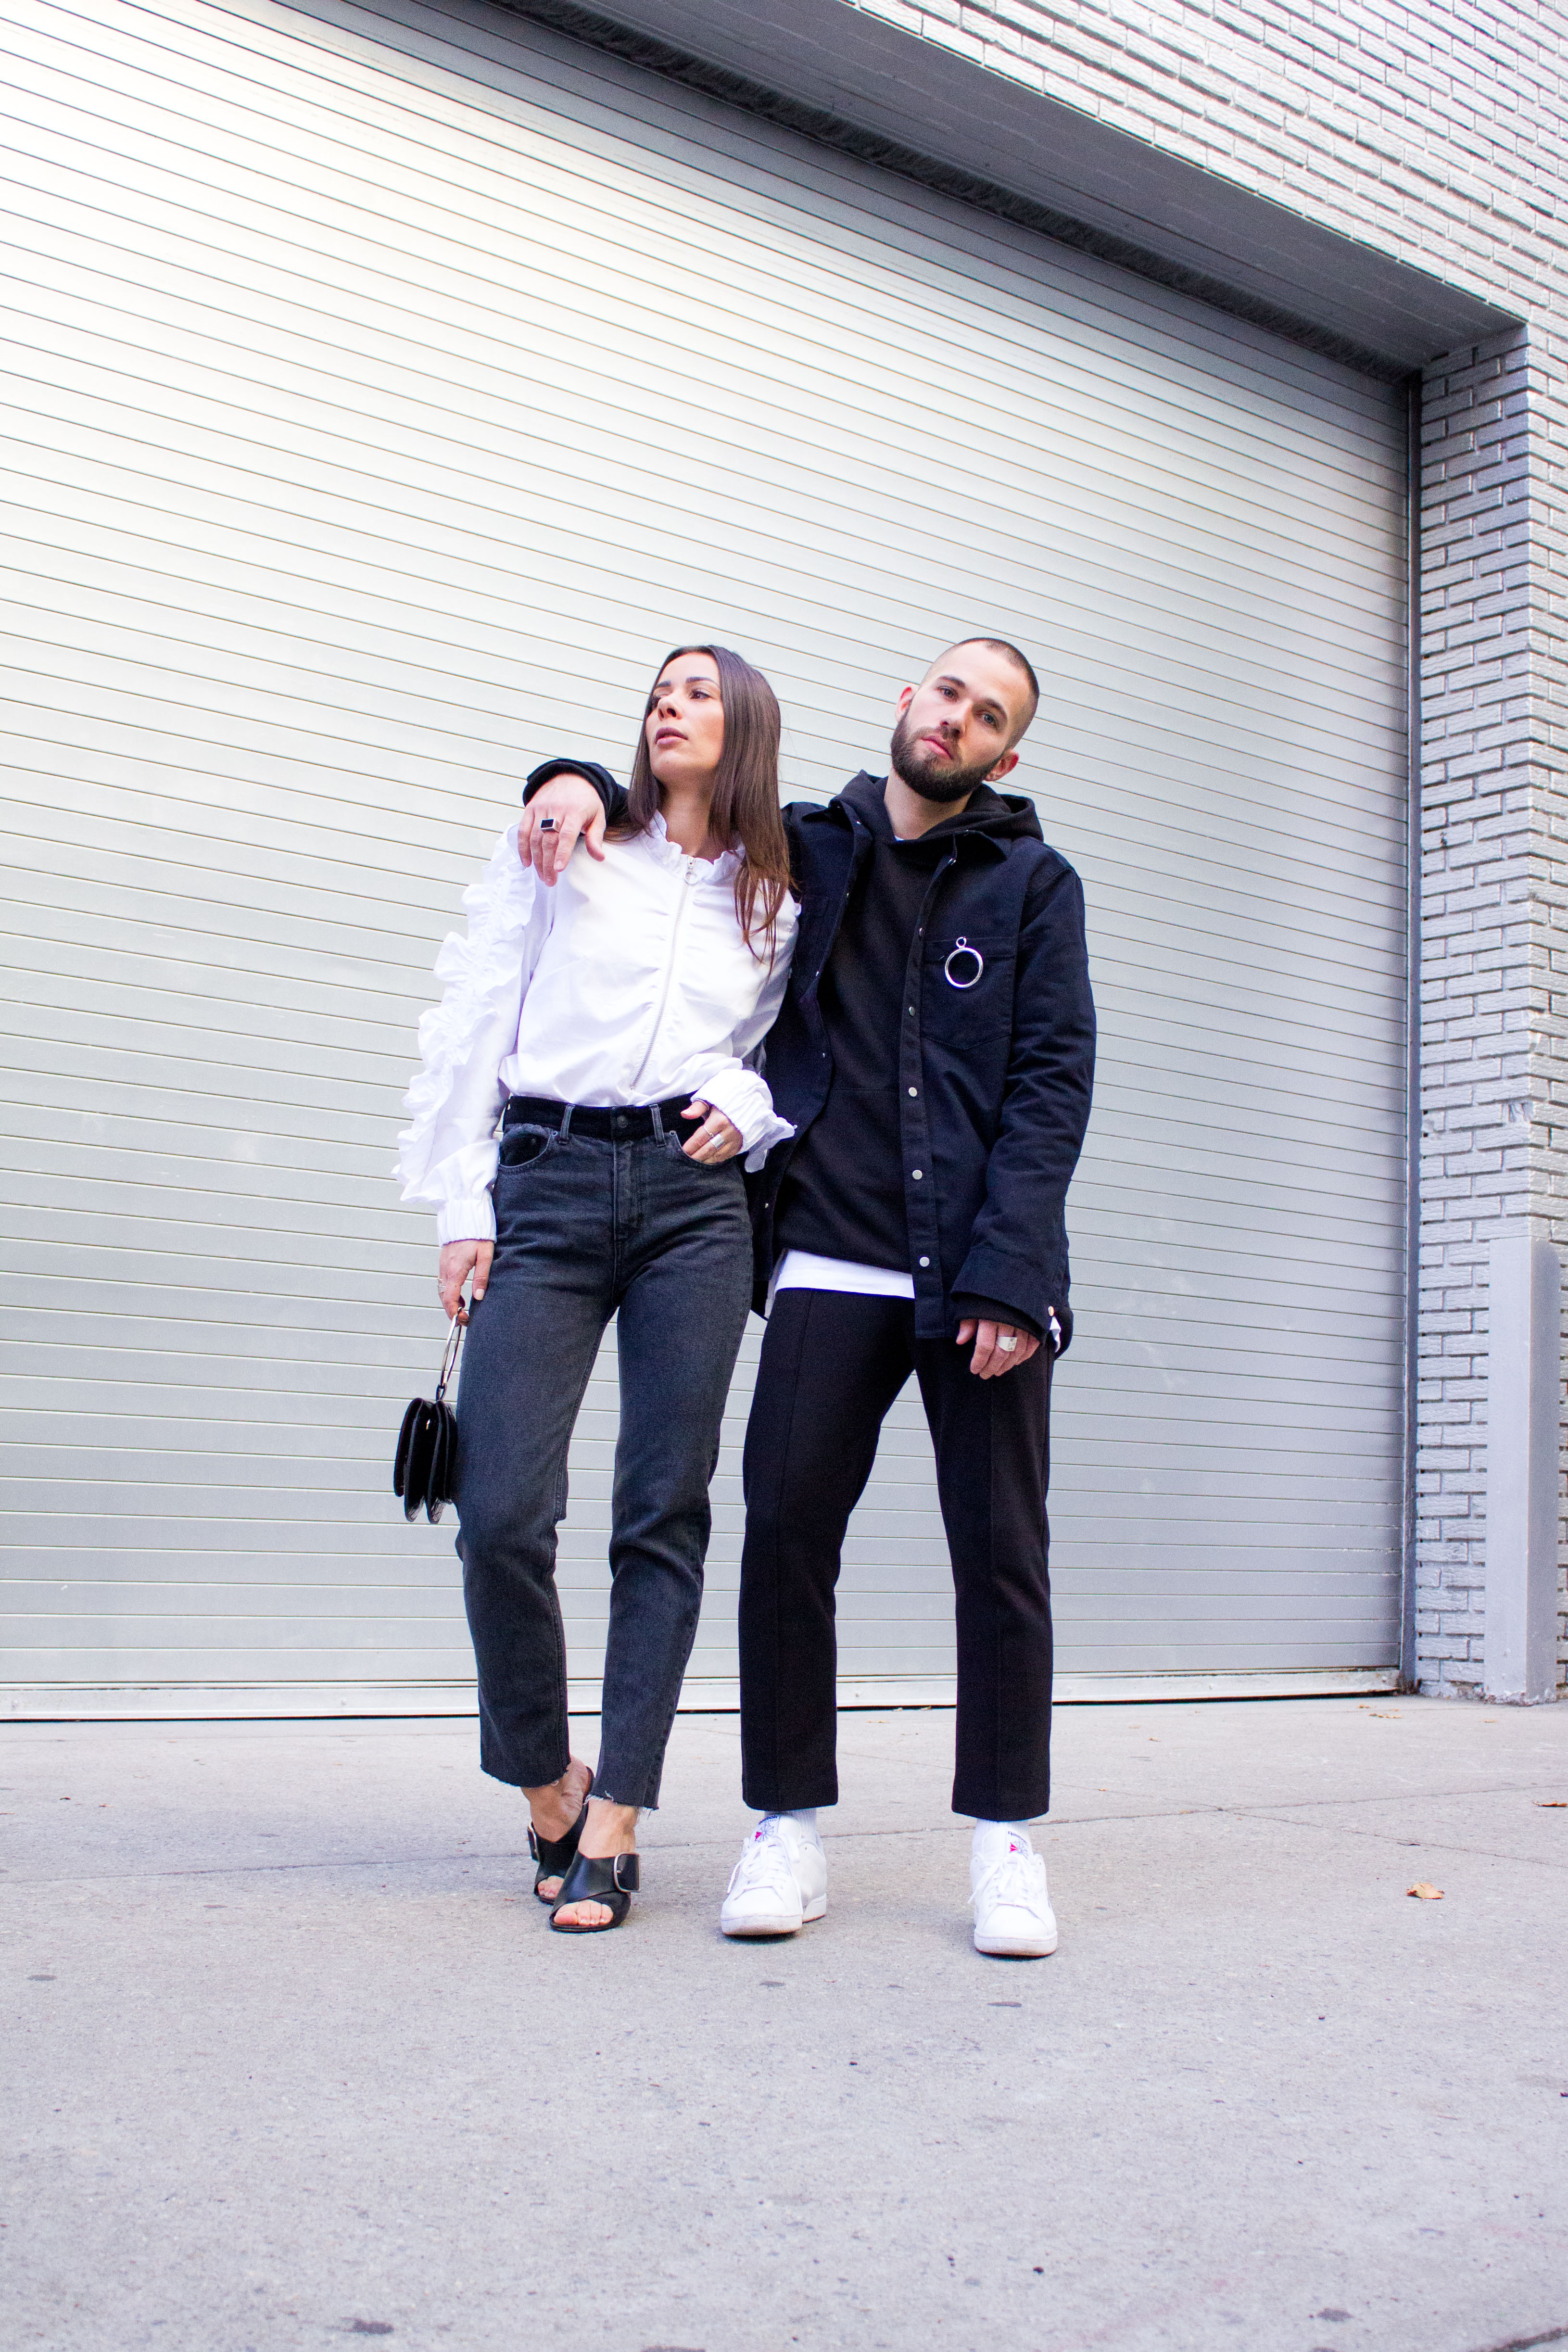 fashion-couple-jaimetoutcheztoi-alice-js-blog-mode-19